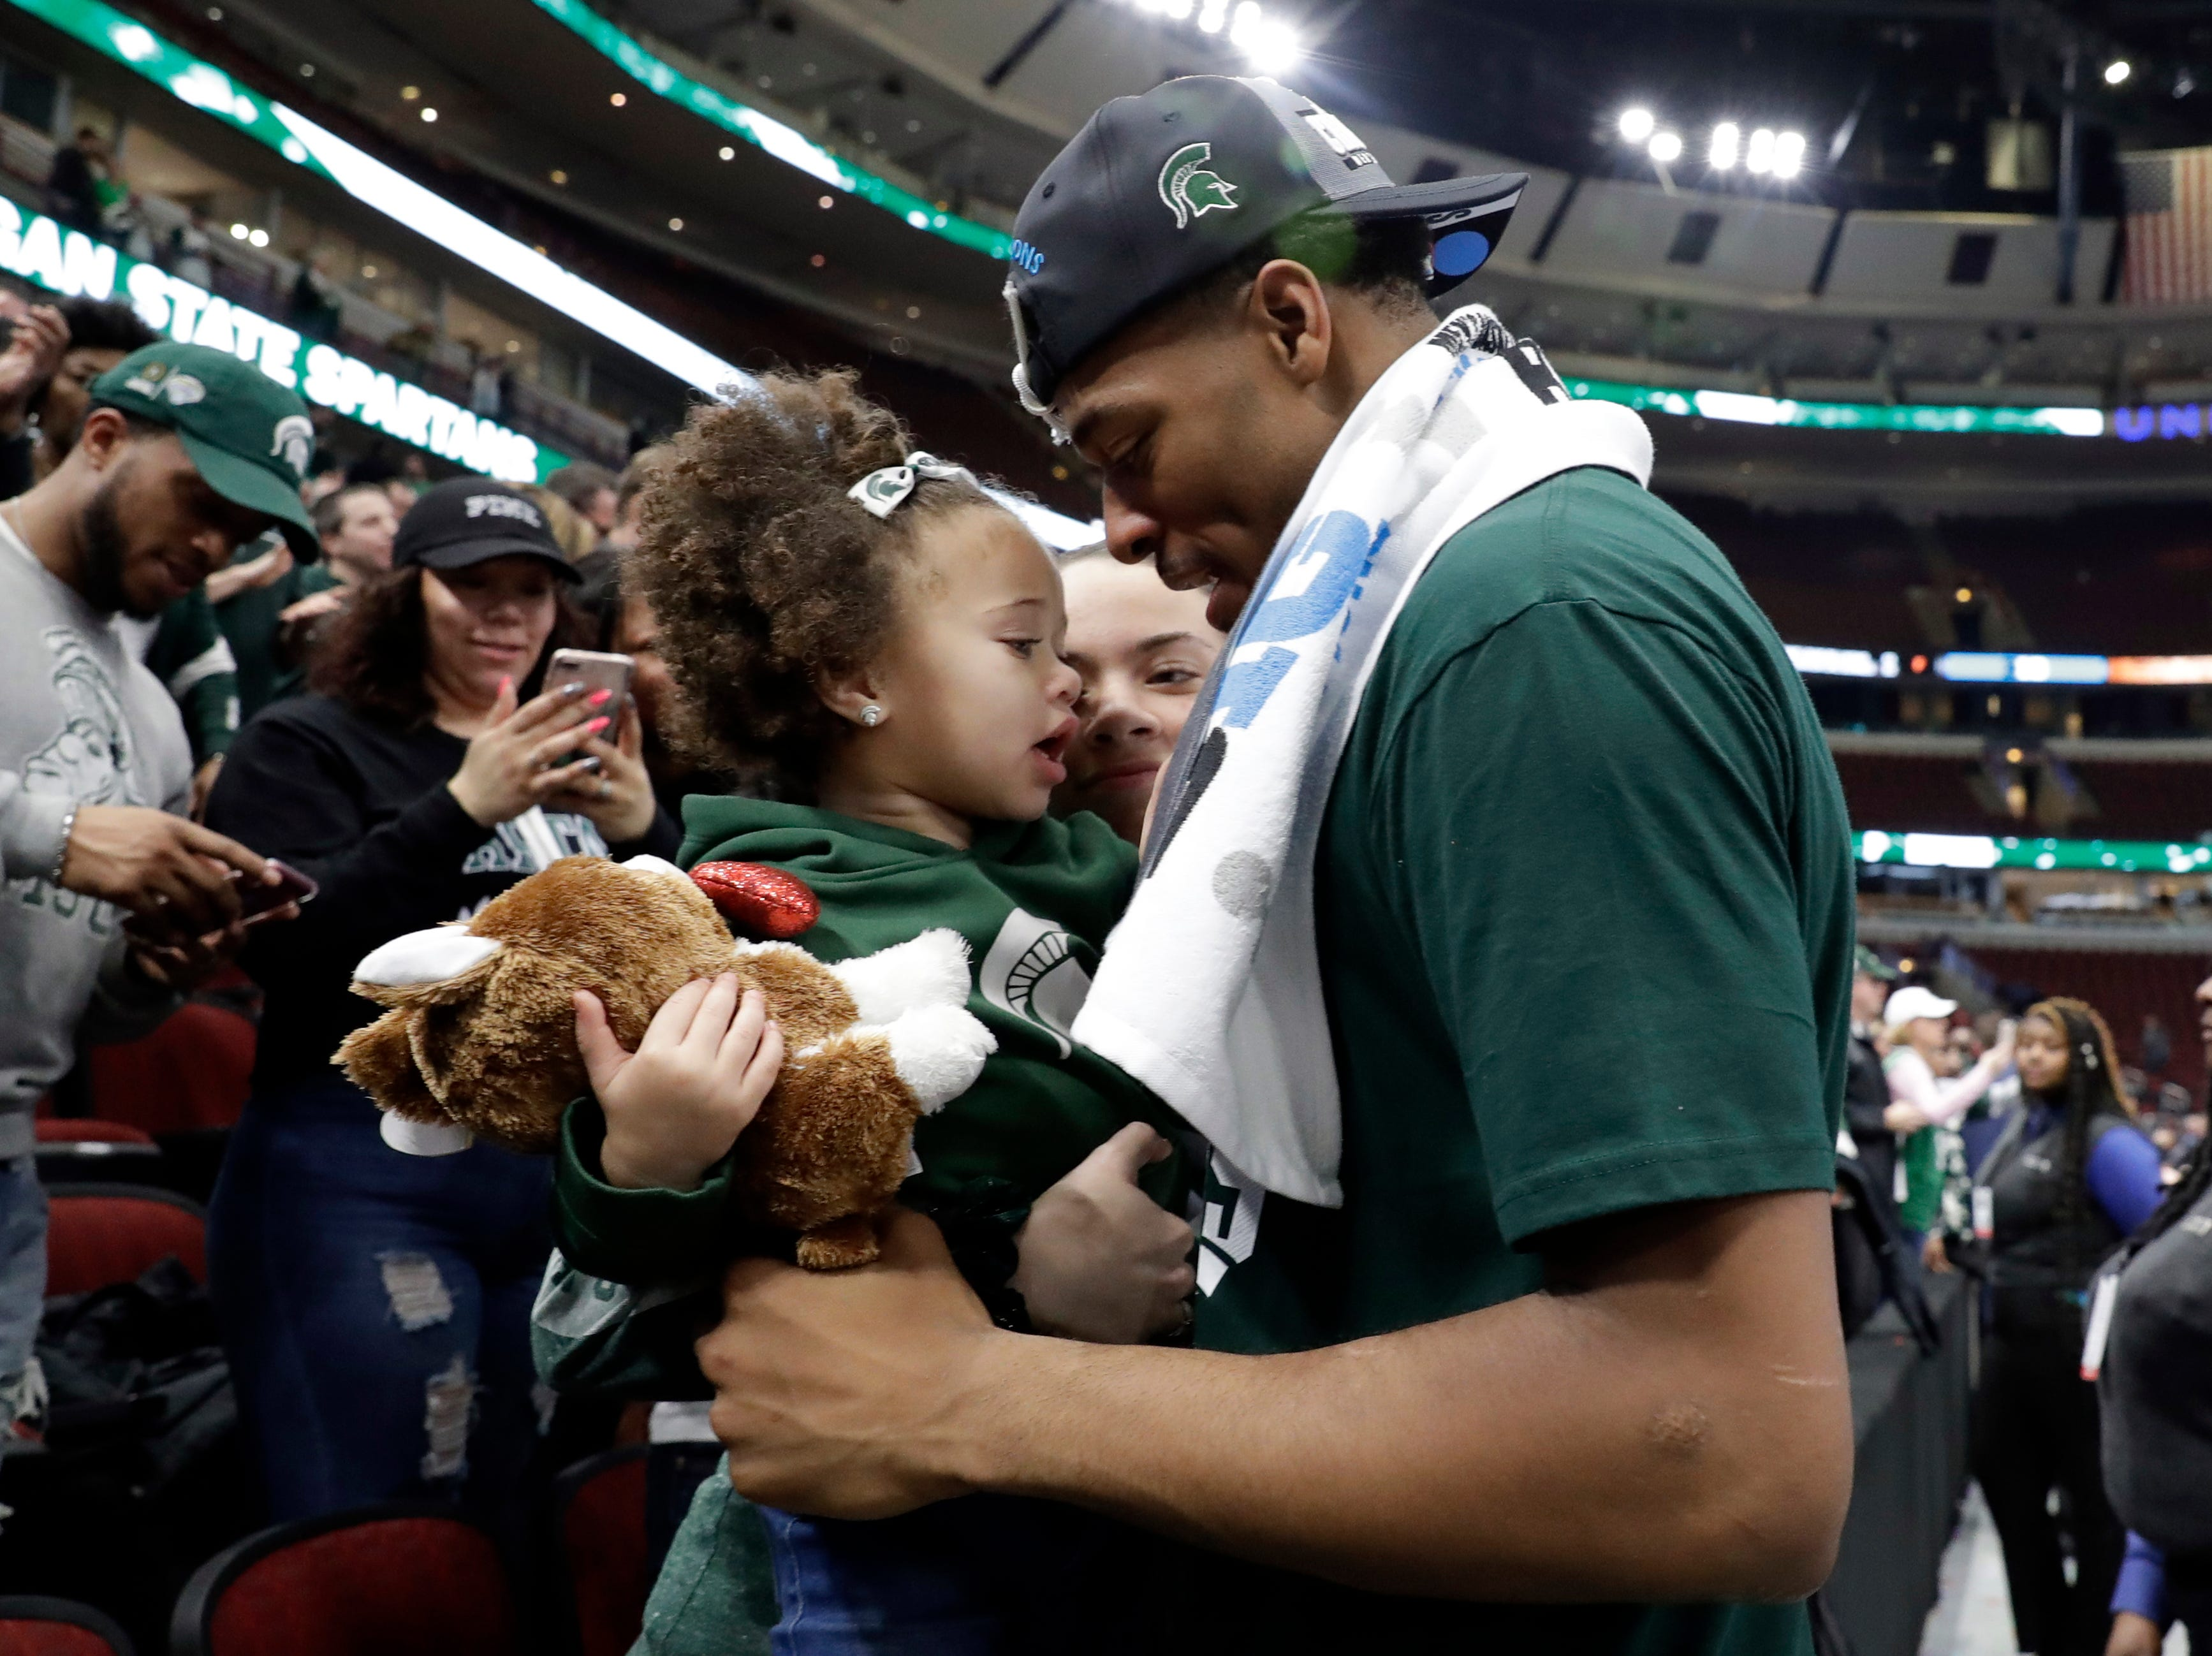 Michigan State's Xavier Tillman celebrates with his daughter after defeating Michigan 65-60 in an NCAA college basketball championship game in the Big Ten Conference tournament, Sunday, March 17, 2019, in Chicago. (AP Photo/Nam Y. Huh)